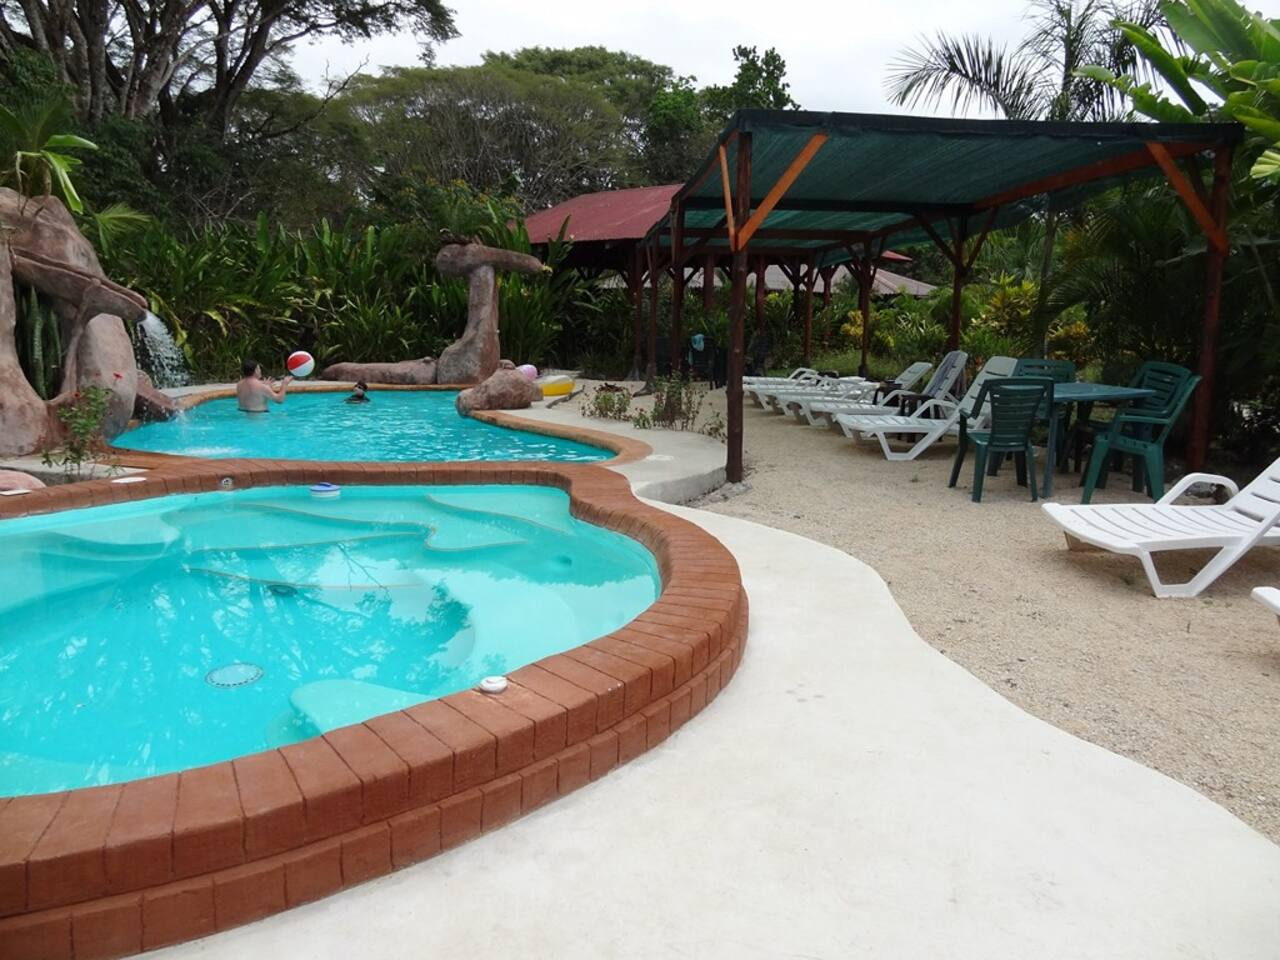 poolside beach, pool and 10 person cool water Jacuzzi